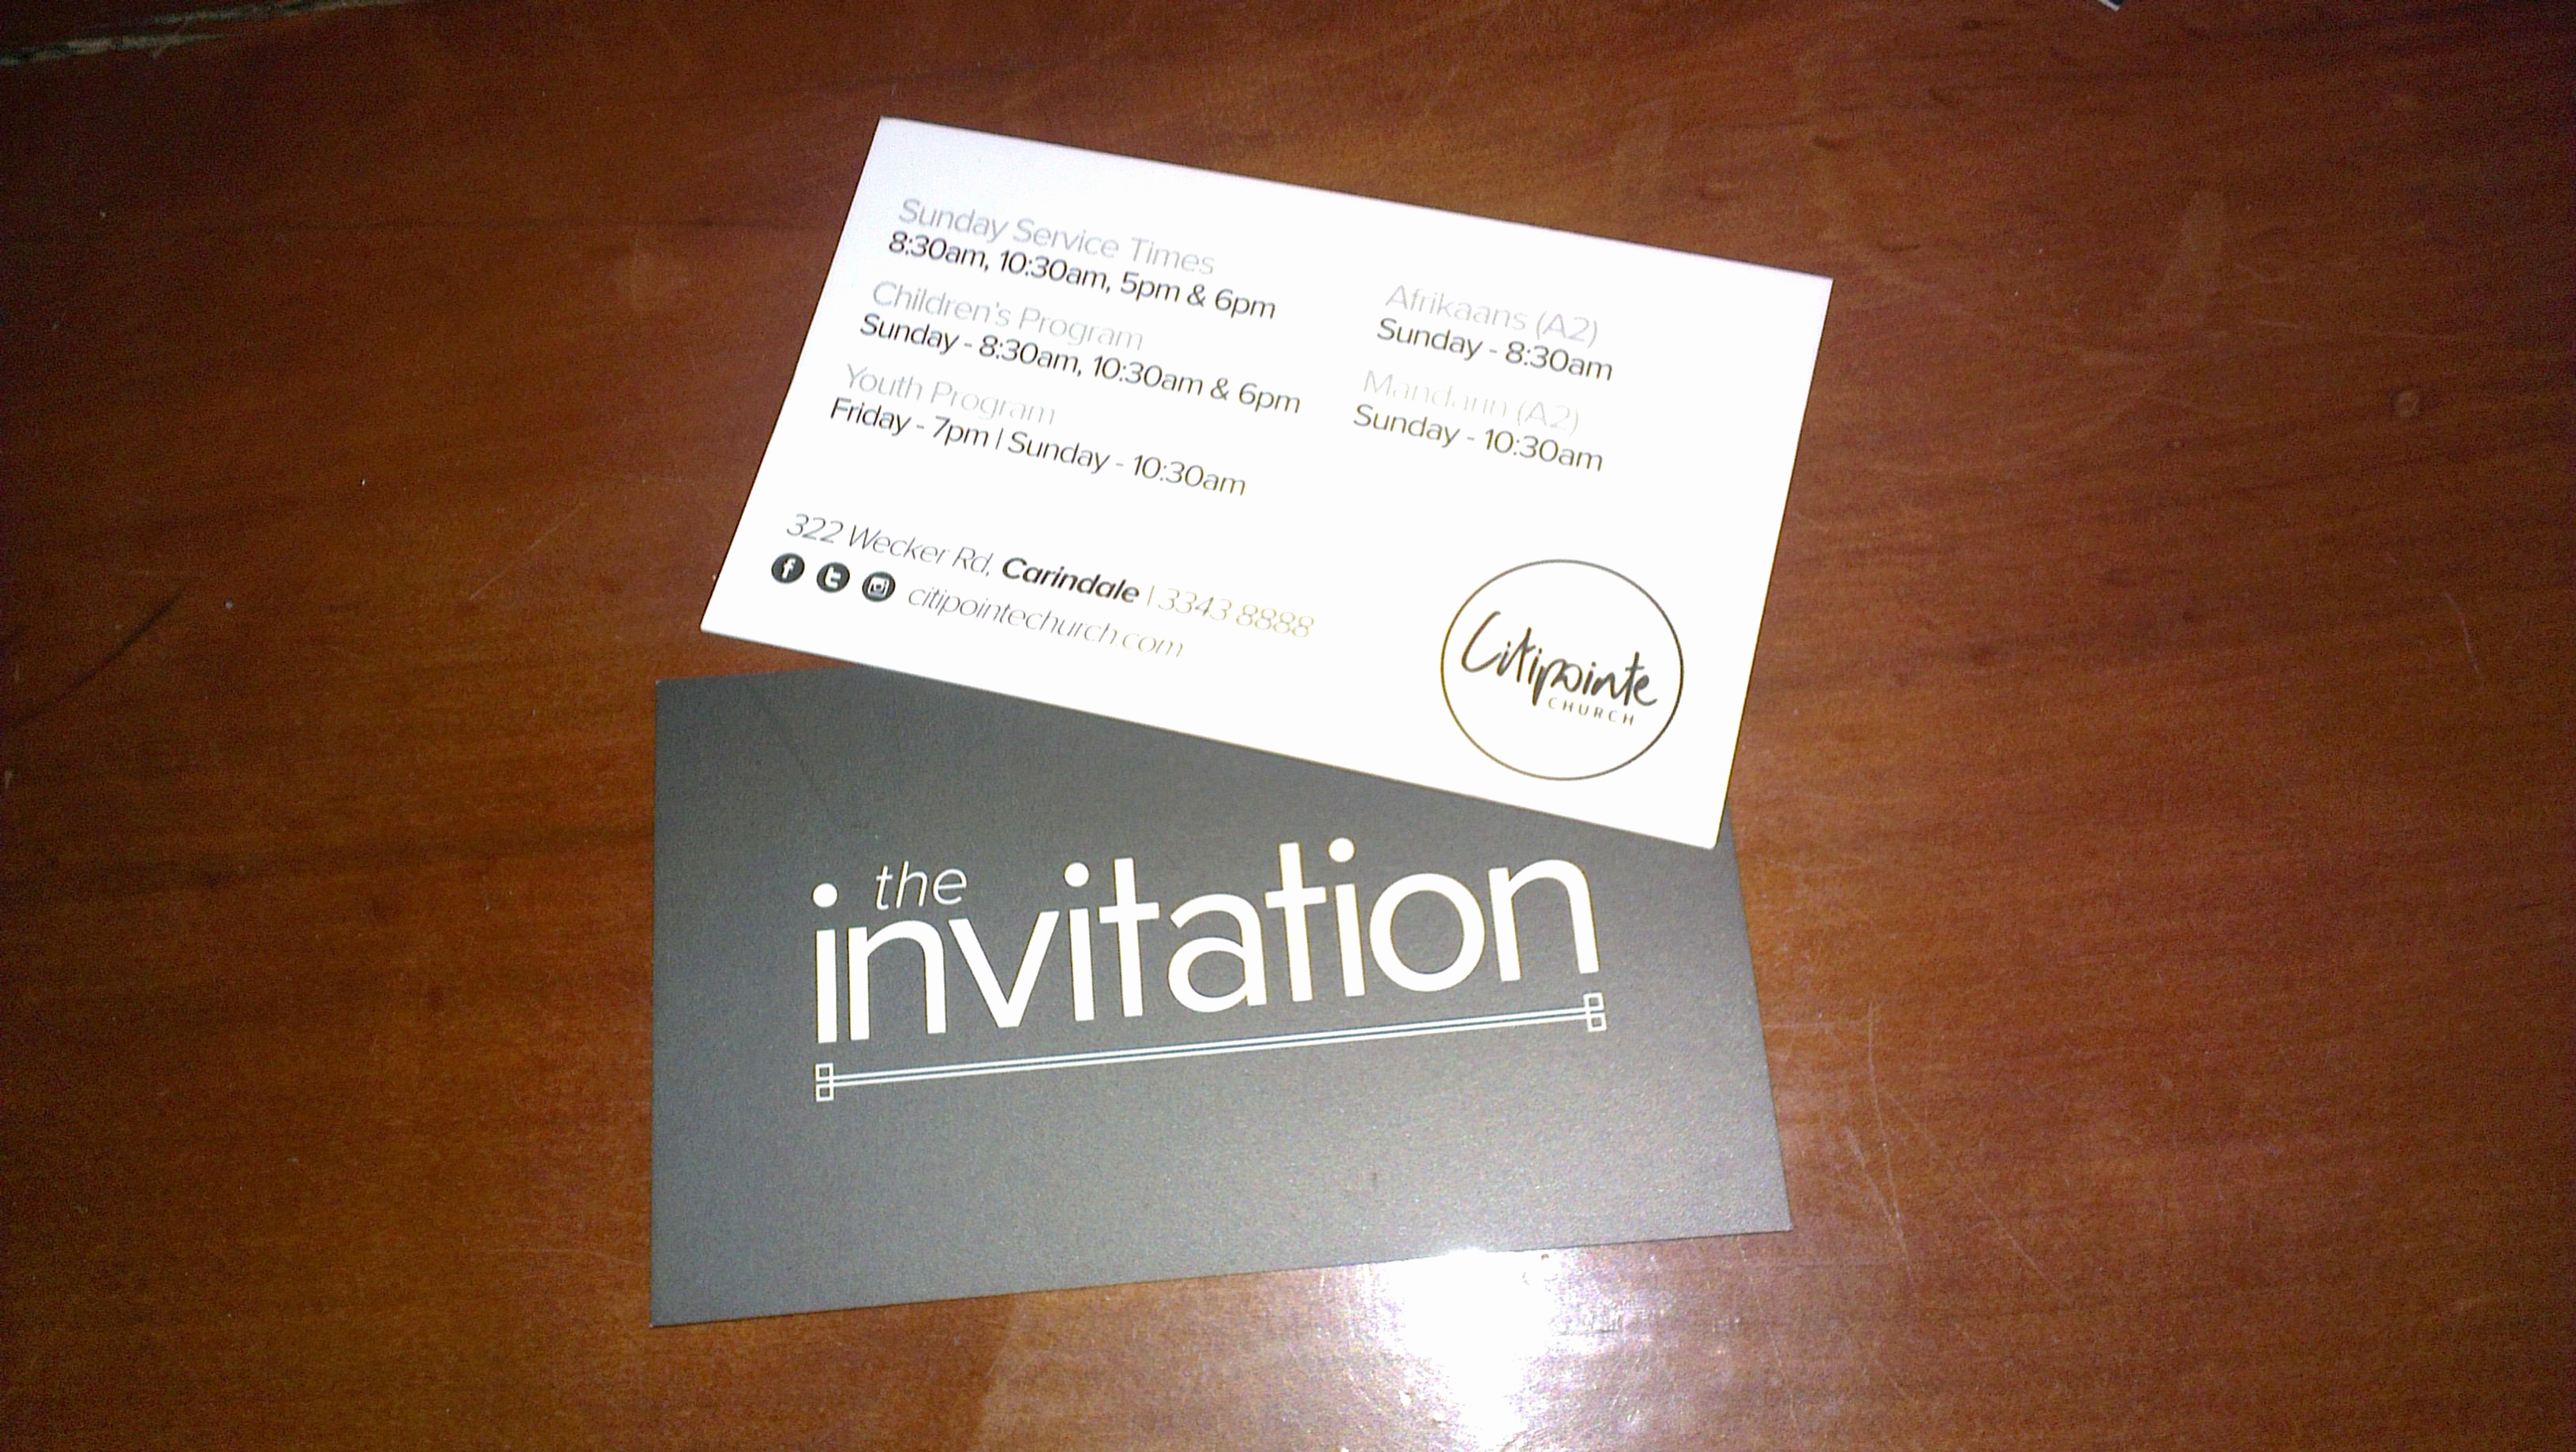 Church Invitation Cards Templates Lovely Church Invite Cards Creative Church Invite Cards